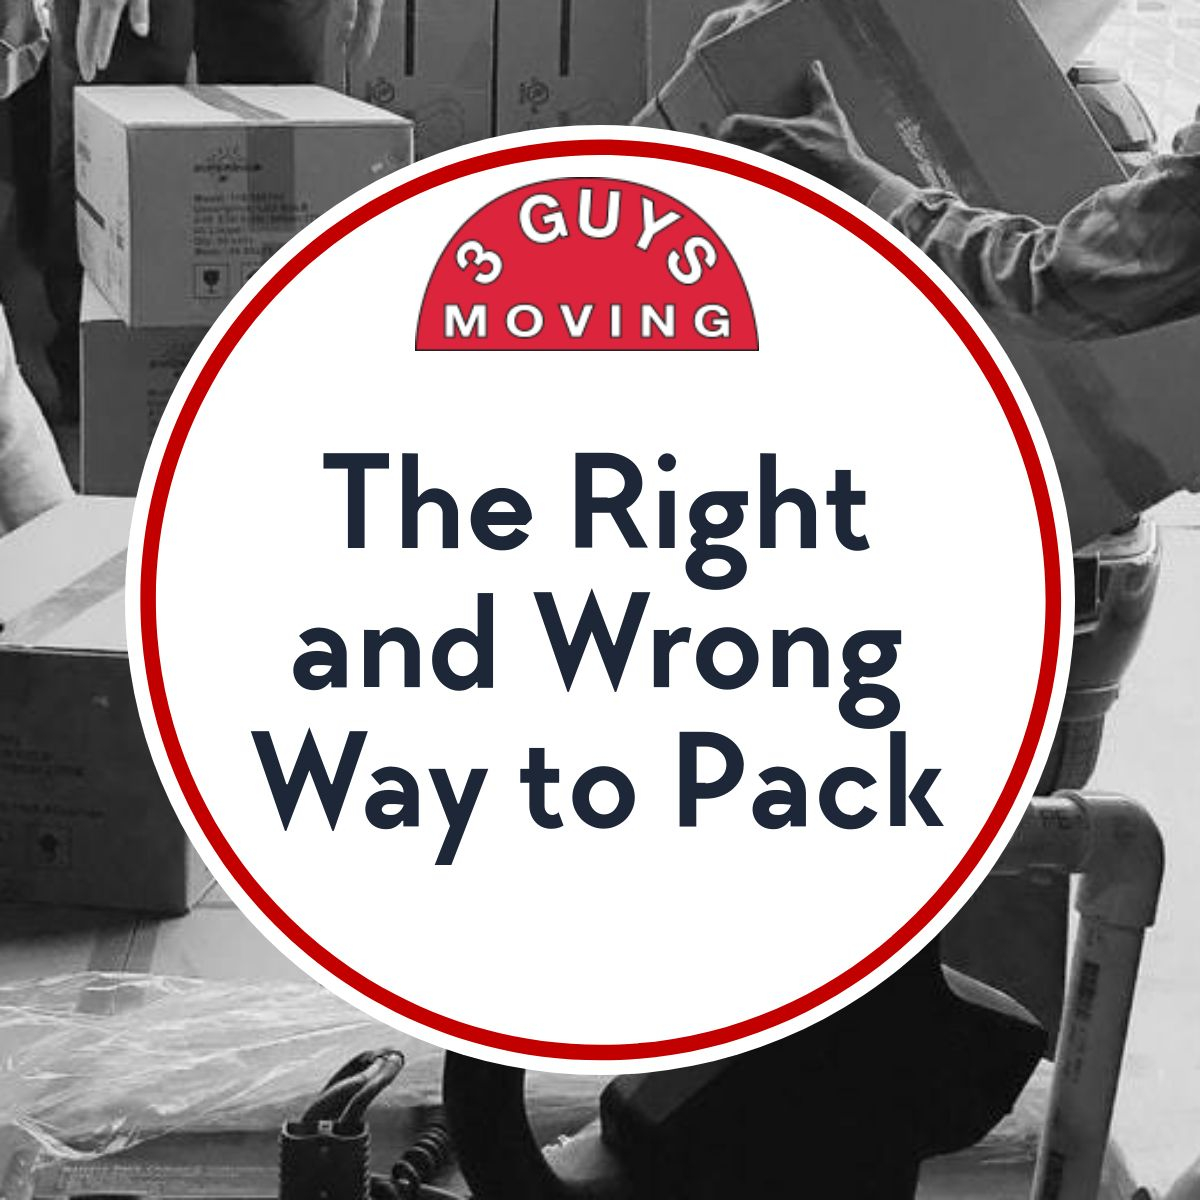 The Right and Wrong Way to Pack - The Right and Wrong Way to Pack